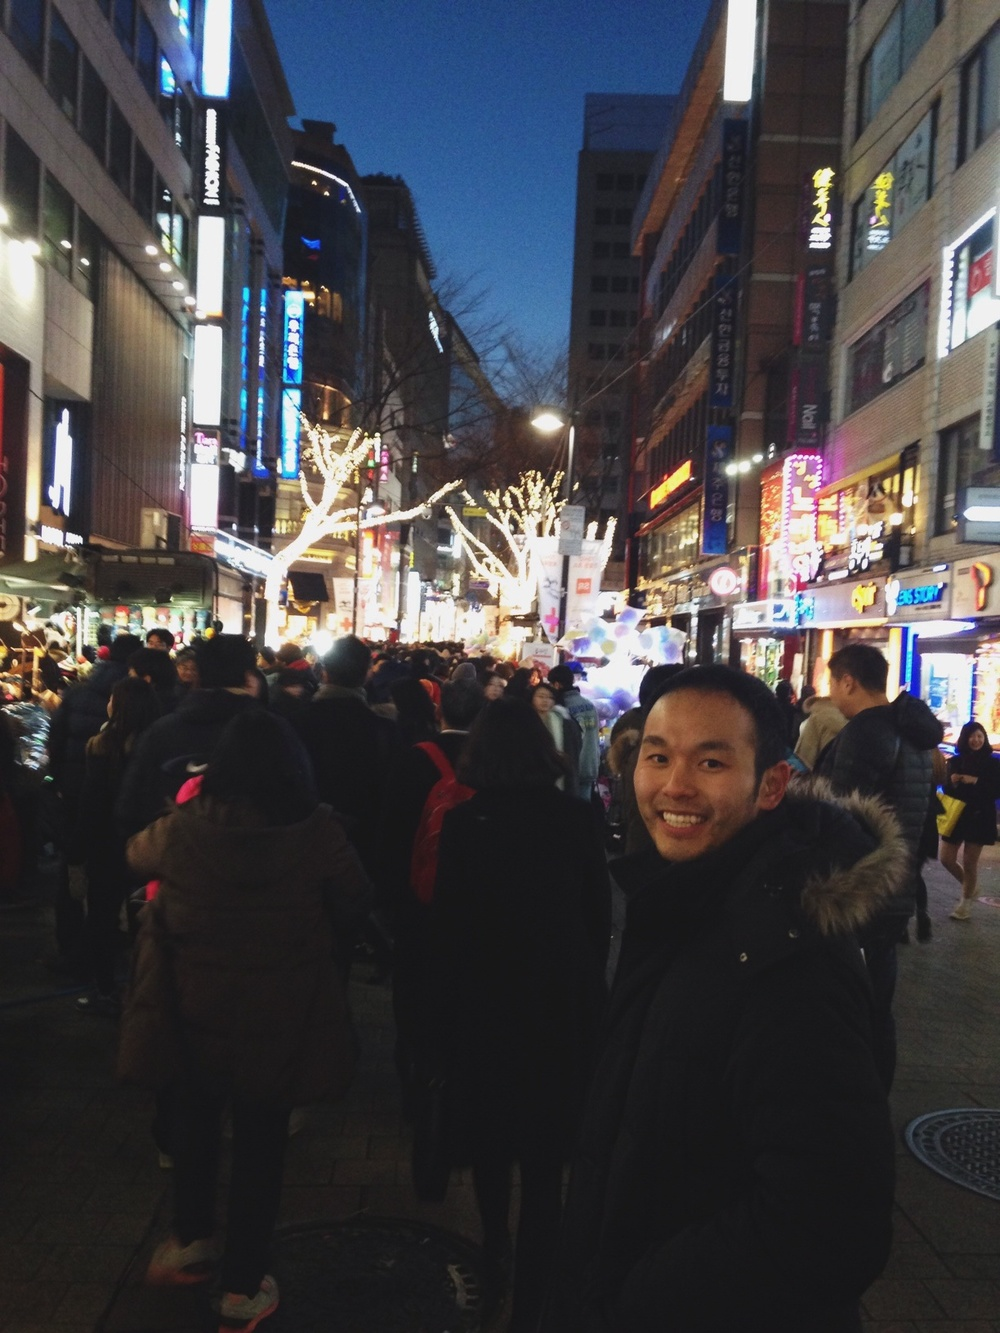 The packed streets of Myeongdong on Christmas day!